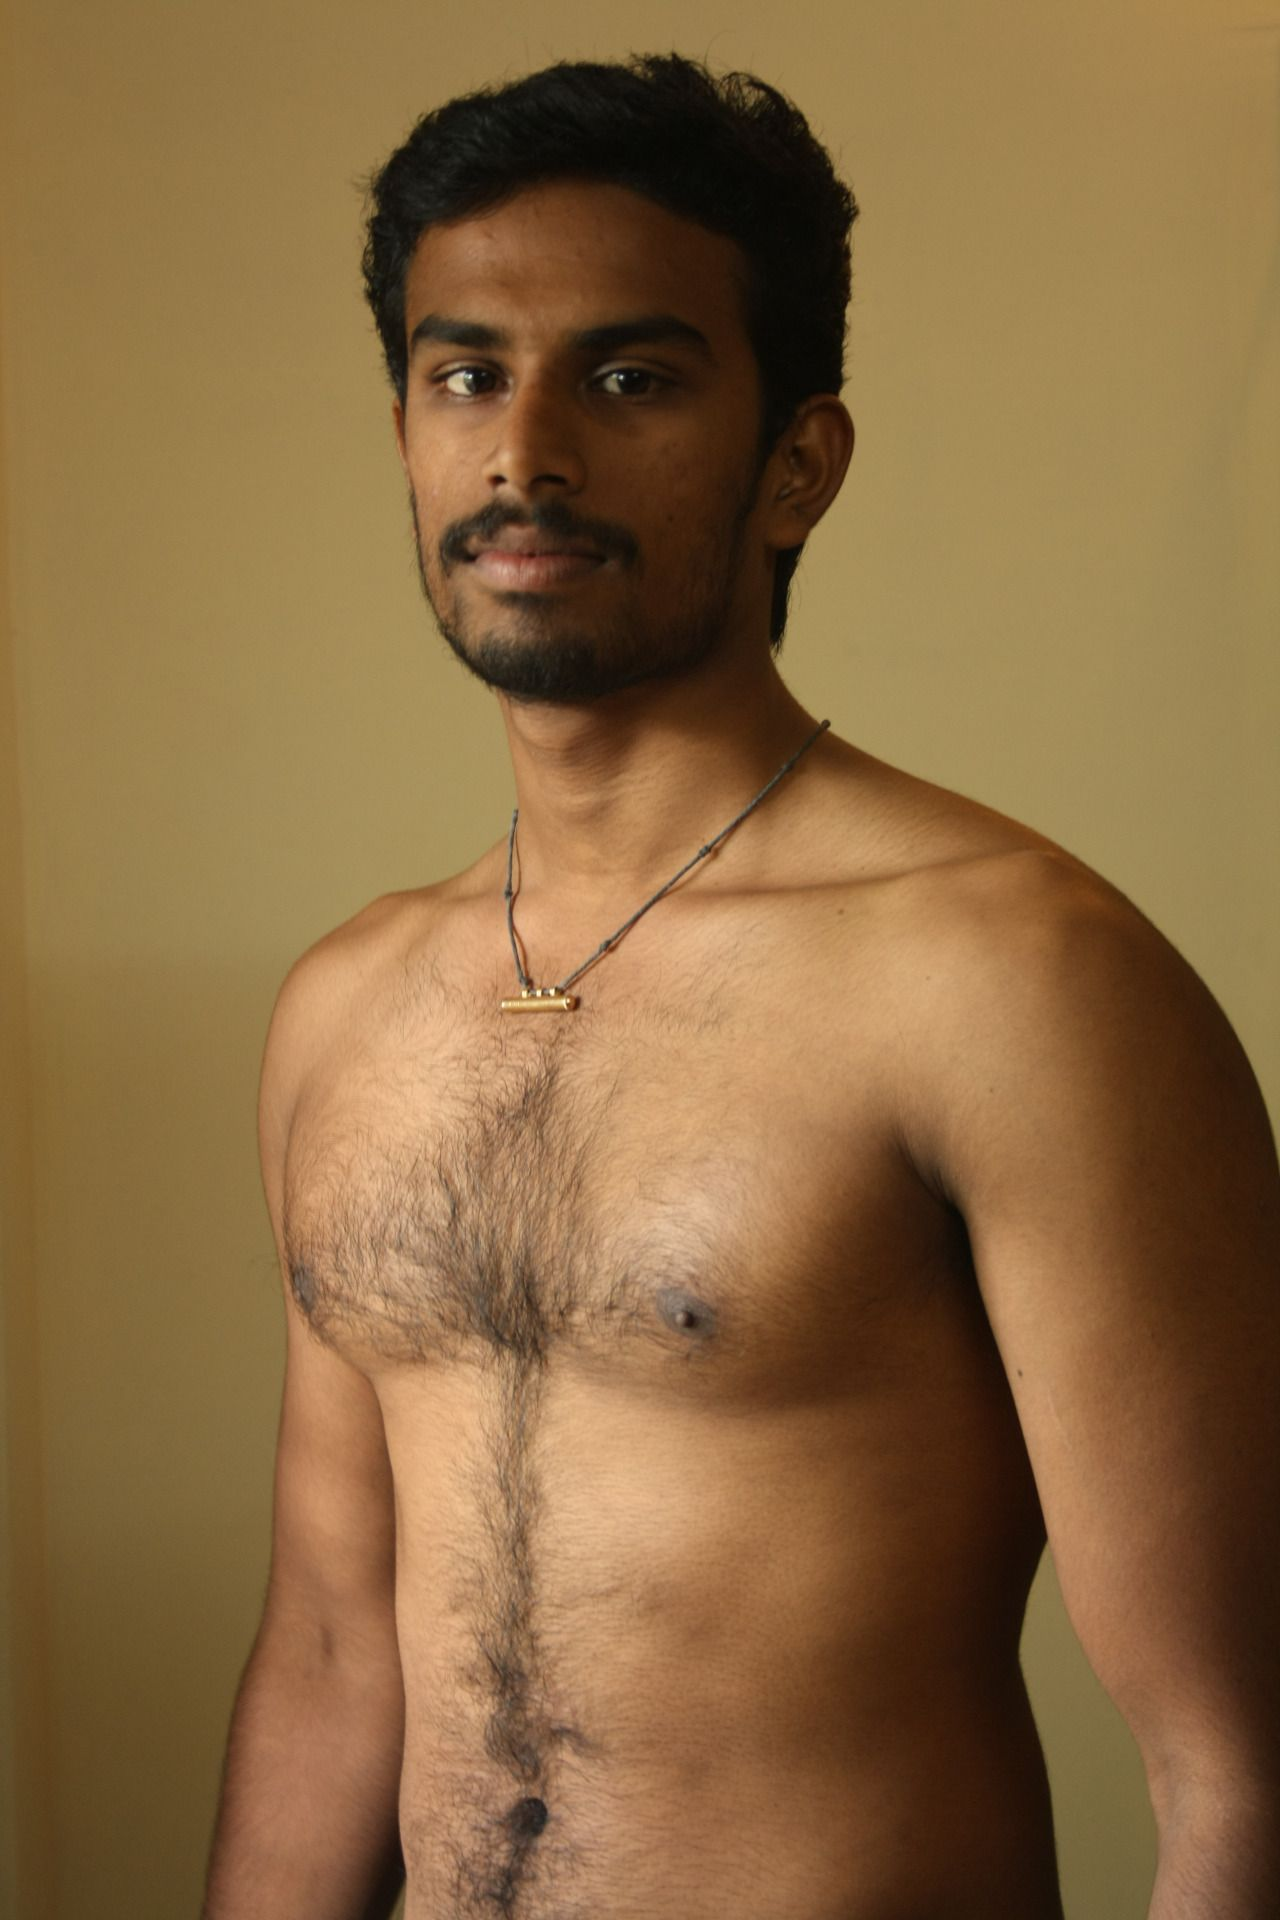 Young Hairy Chests  Indian Hot Man In 2019  Hairy Men -7147